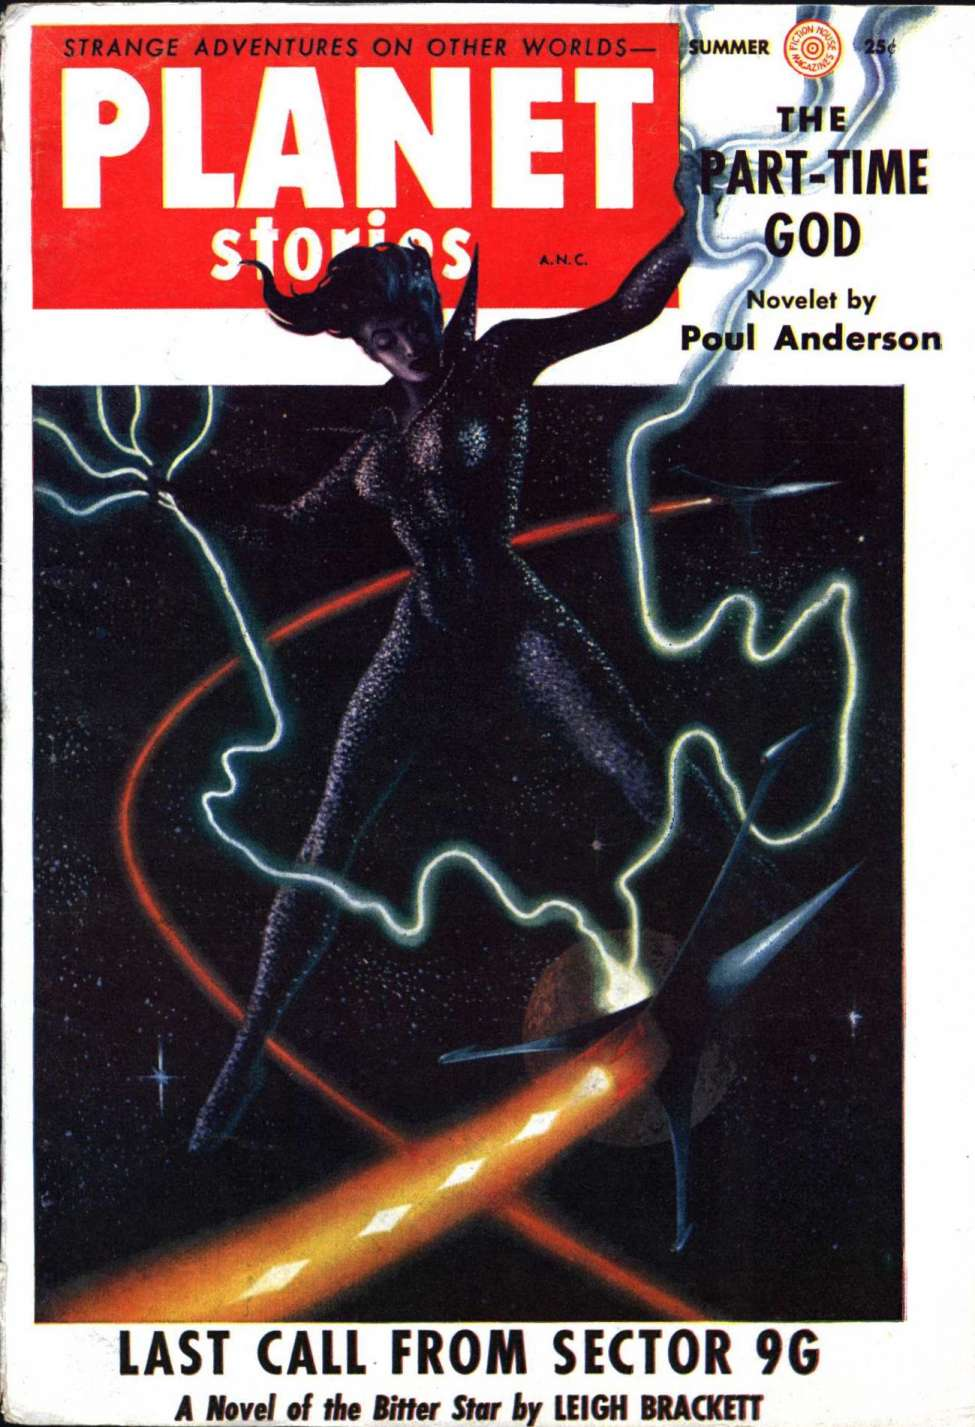 Comic Book Cover For Planet Stories v06 11 - Last Call from Sector 9G - Leigh Brackett